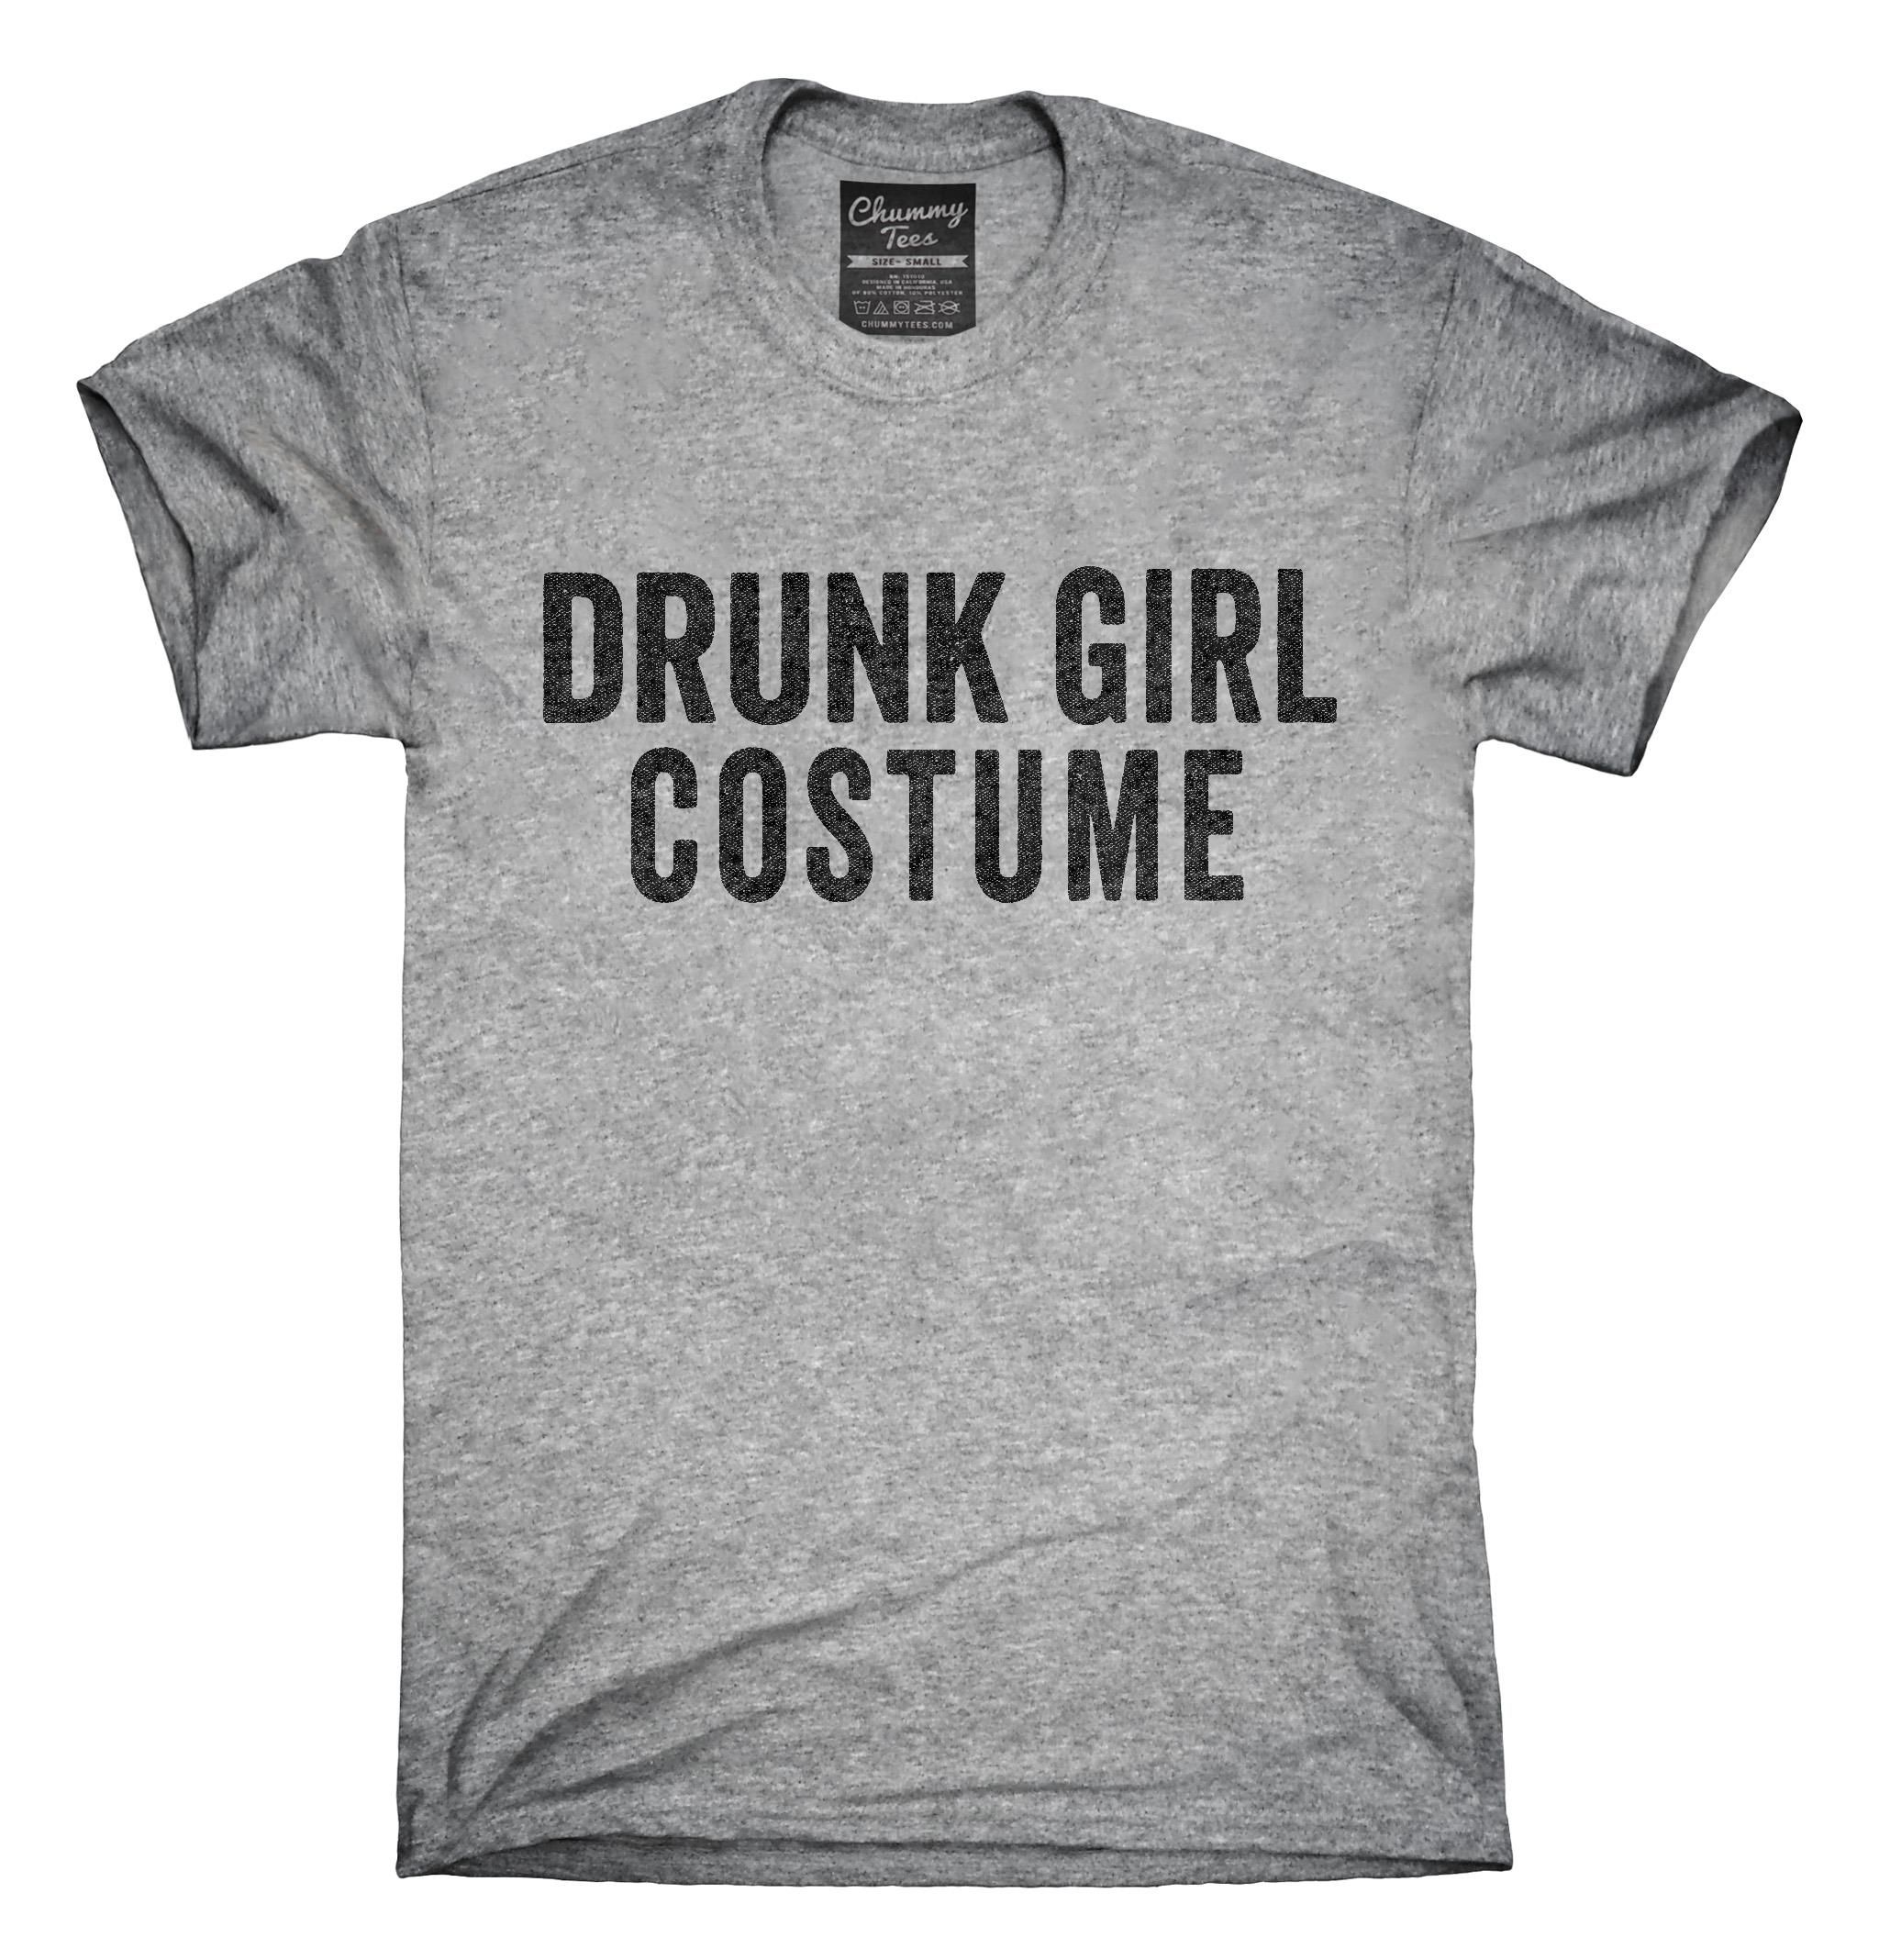 You can order this Drunk Girl Costume t-shirt design on several different sizes, colors, and styles of shirts including short sleeve shirts, hoodies, and tank tops.  Each shirt is digitally printed when ordered, and shipped from Northern California.